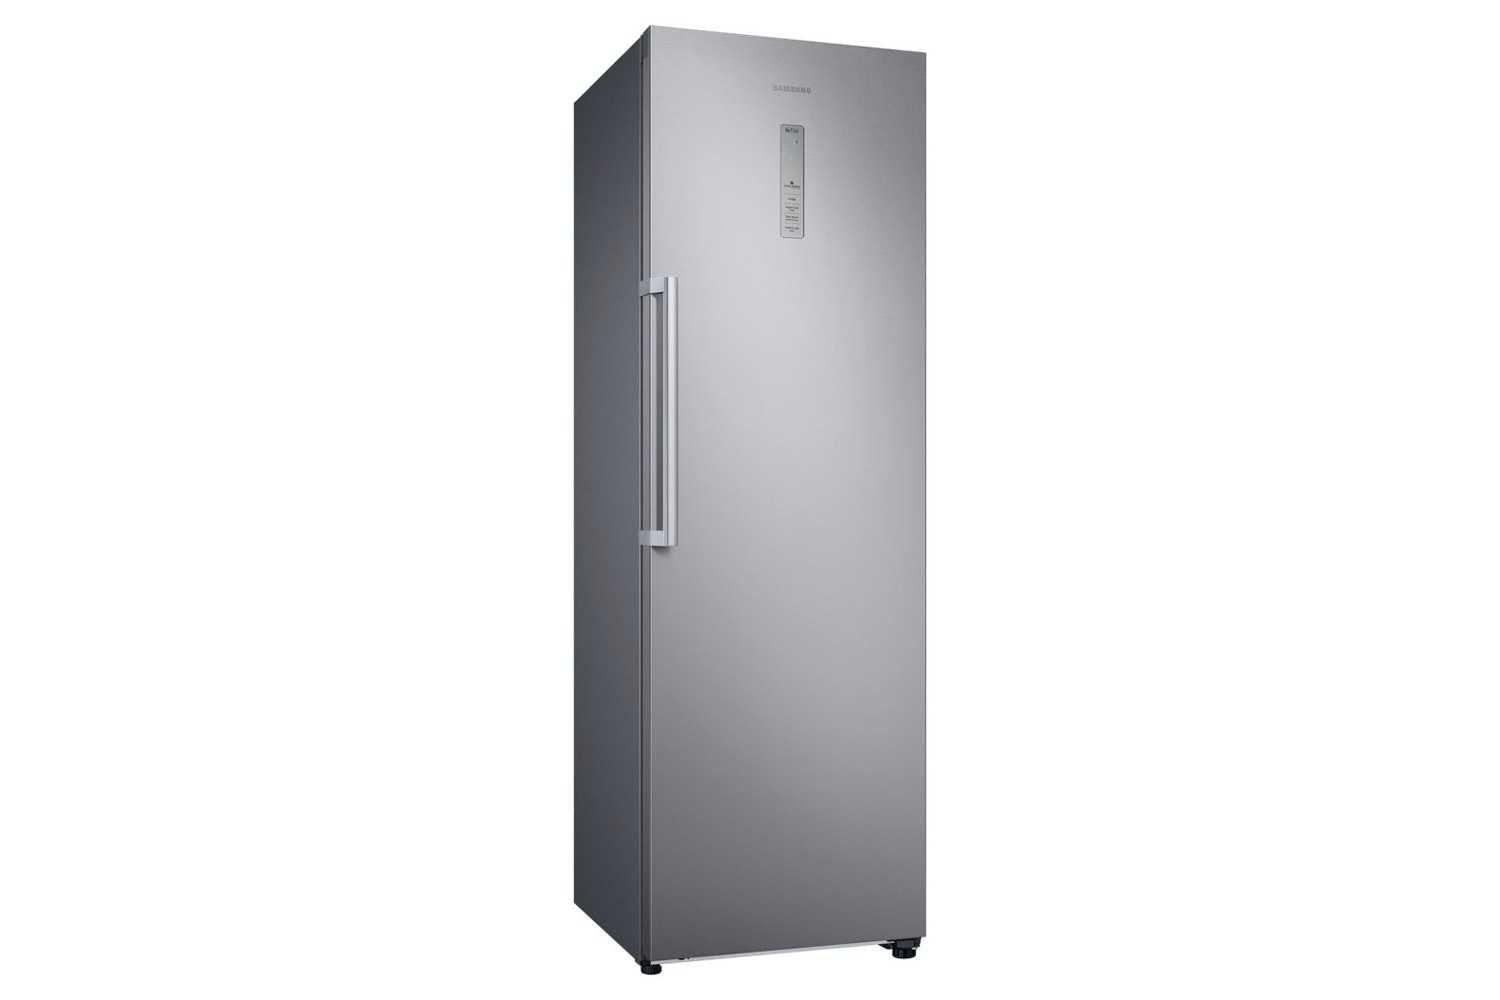 Samsung Tall Larder Fridge | RR39M7140SA/EU